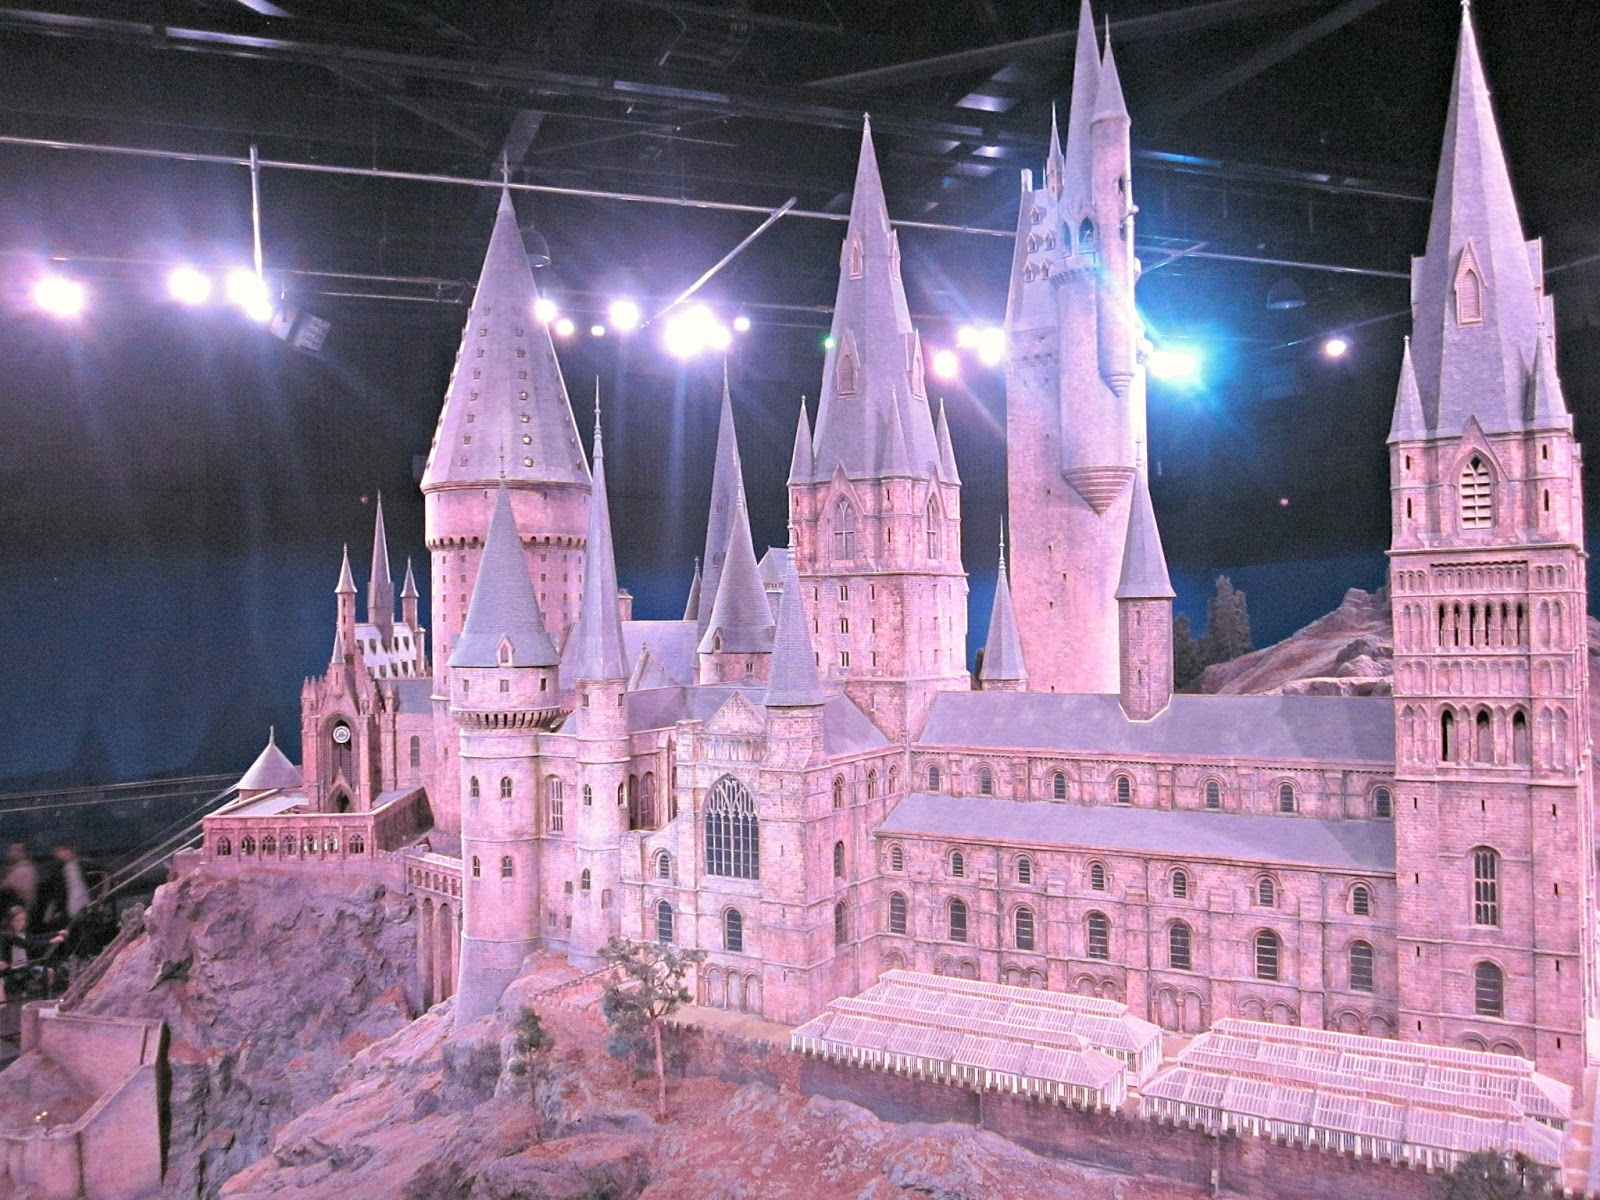 Hogwarts Model at The Making Of Harry Potter Warner Brothers Studio Tour